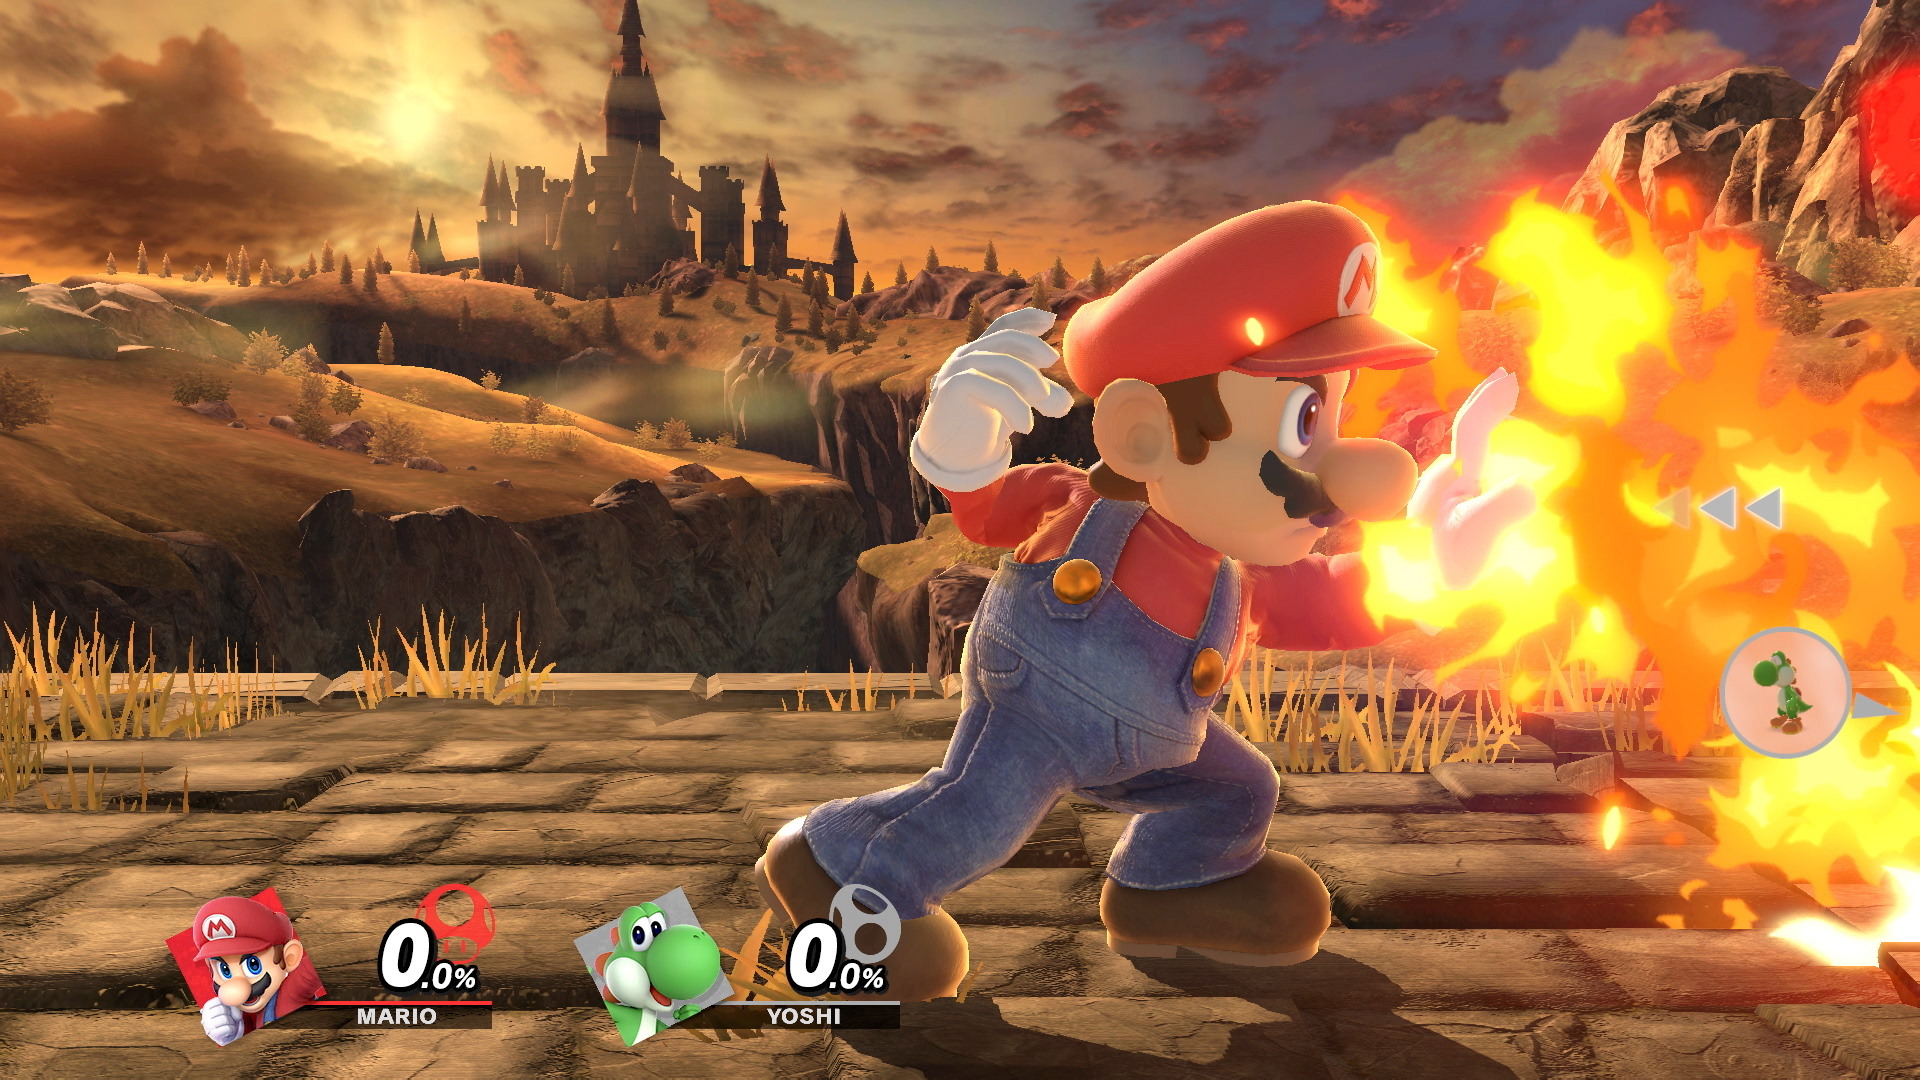 Does Super Smash Bros Ultimate Deliver A Generational Leap For Way Switches At The End Of Switched Circuit And 4way Marios Dungarees Get Higher Res Texture Switch Also Makes Stylistic Change Effects In With Cel Shading Used On Fire Smoke